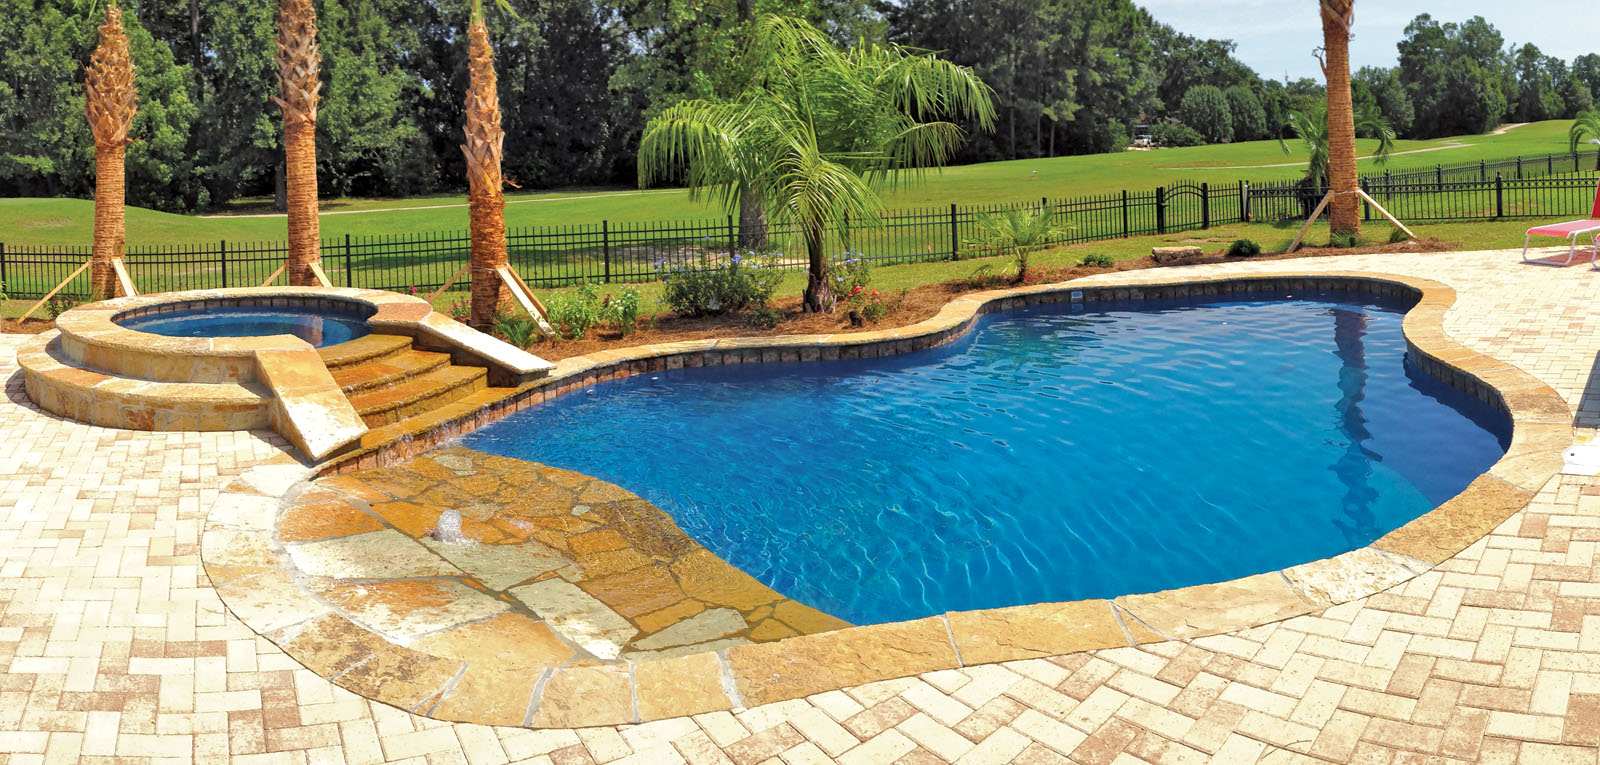 backyard pool landscaping with Zero Beach Entries on Pumpkin And Mum Fall Decorating Ideas Pictures further foxlandscapingonline further Atlanta Pool Construction furthermore Photo Gallery as well 21 Roof Garden Design And Whimsical Roof Garden Landscape Designs 666157b6d10feeb3.